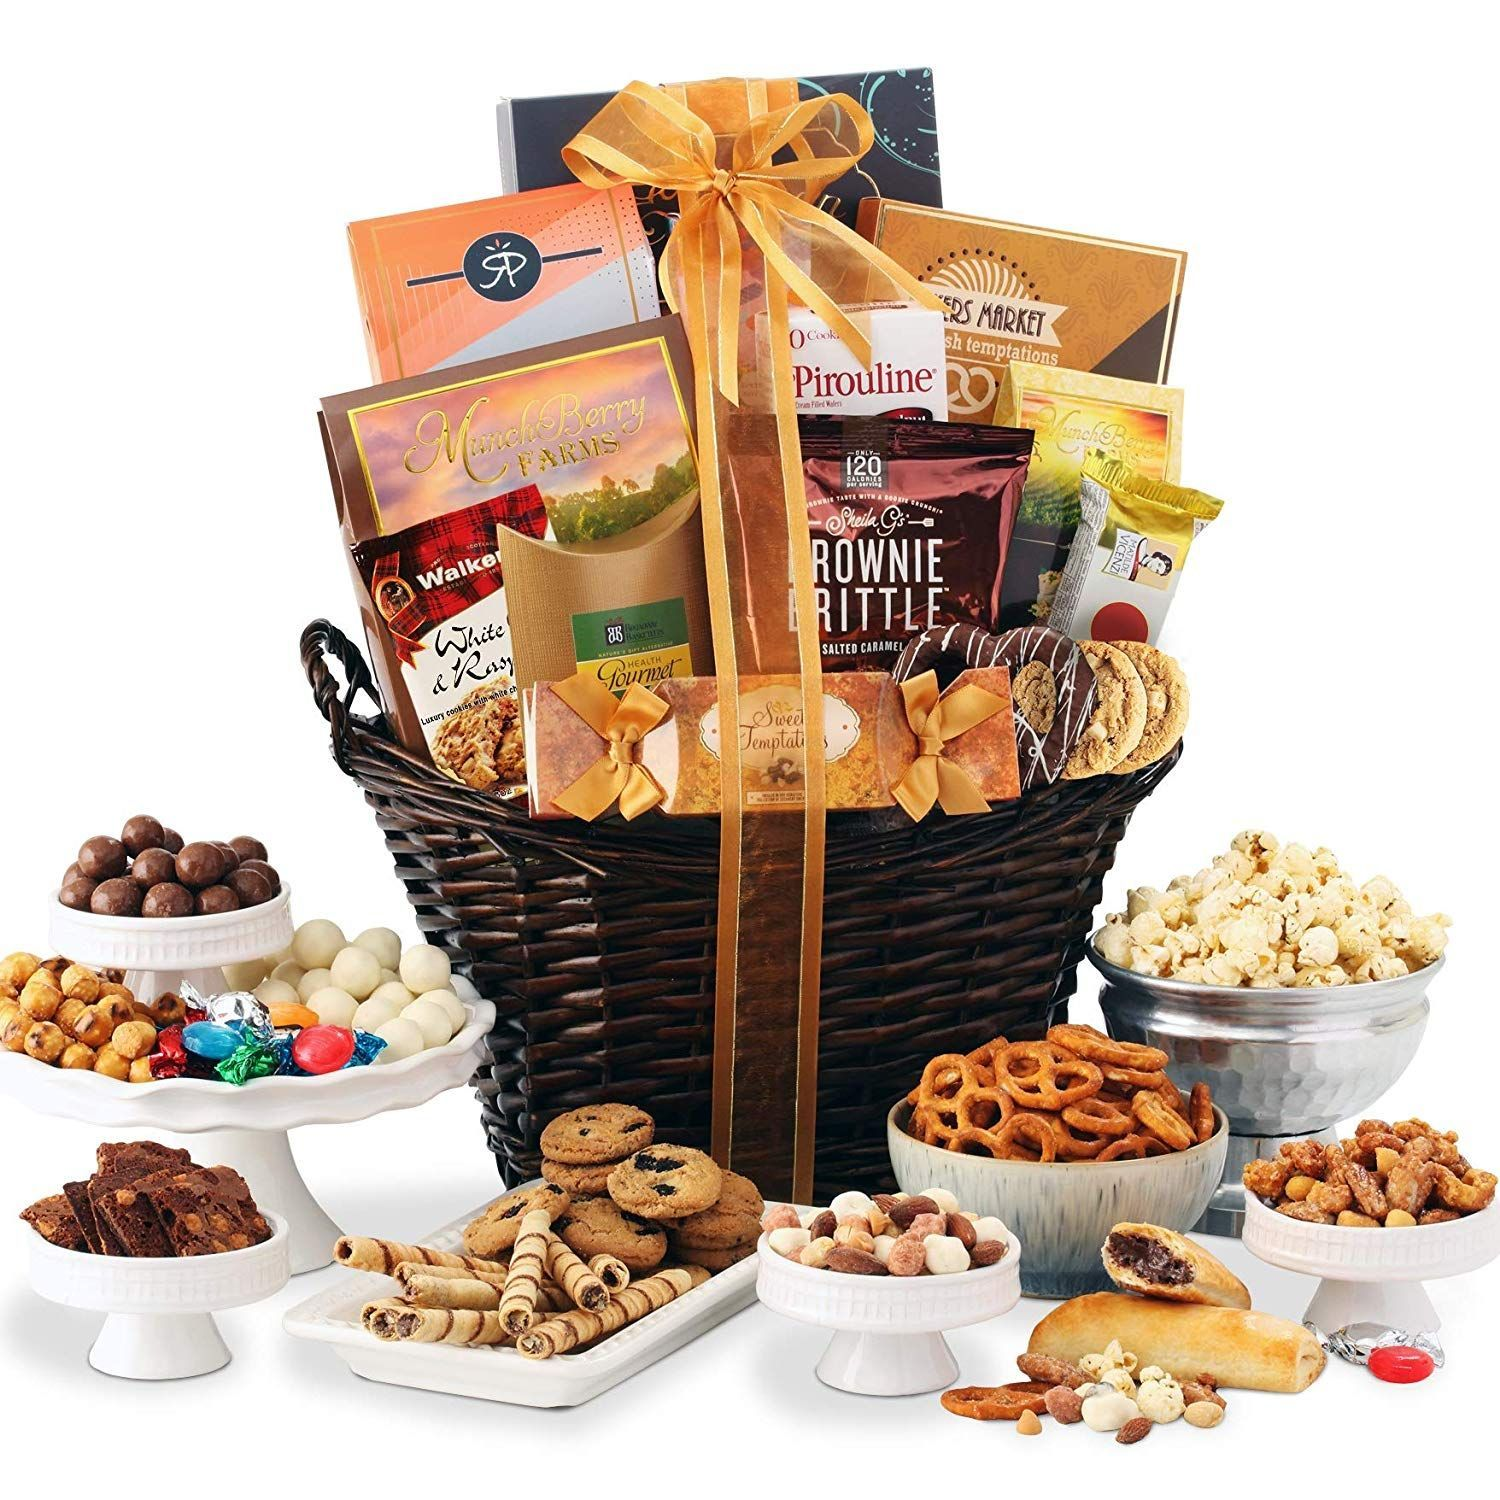 24 Mother S Day Gift Basket Ideas Best Gift Baskets For Mother S Day For Every Mom